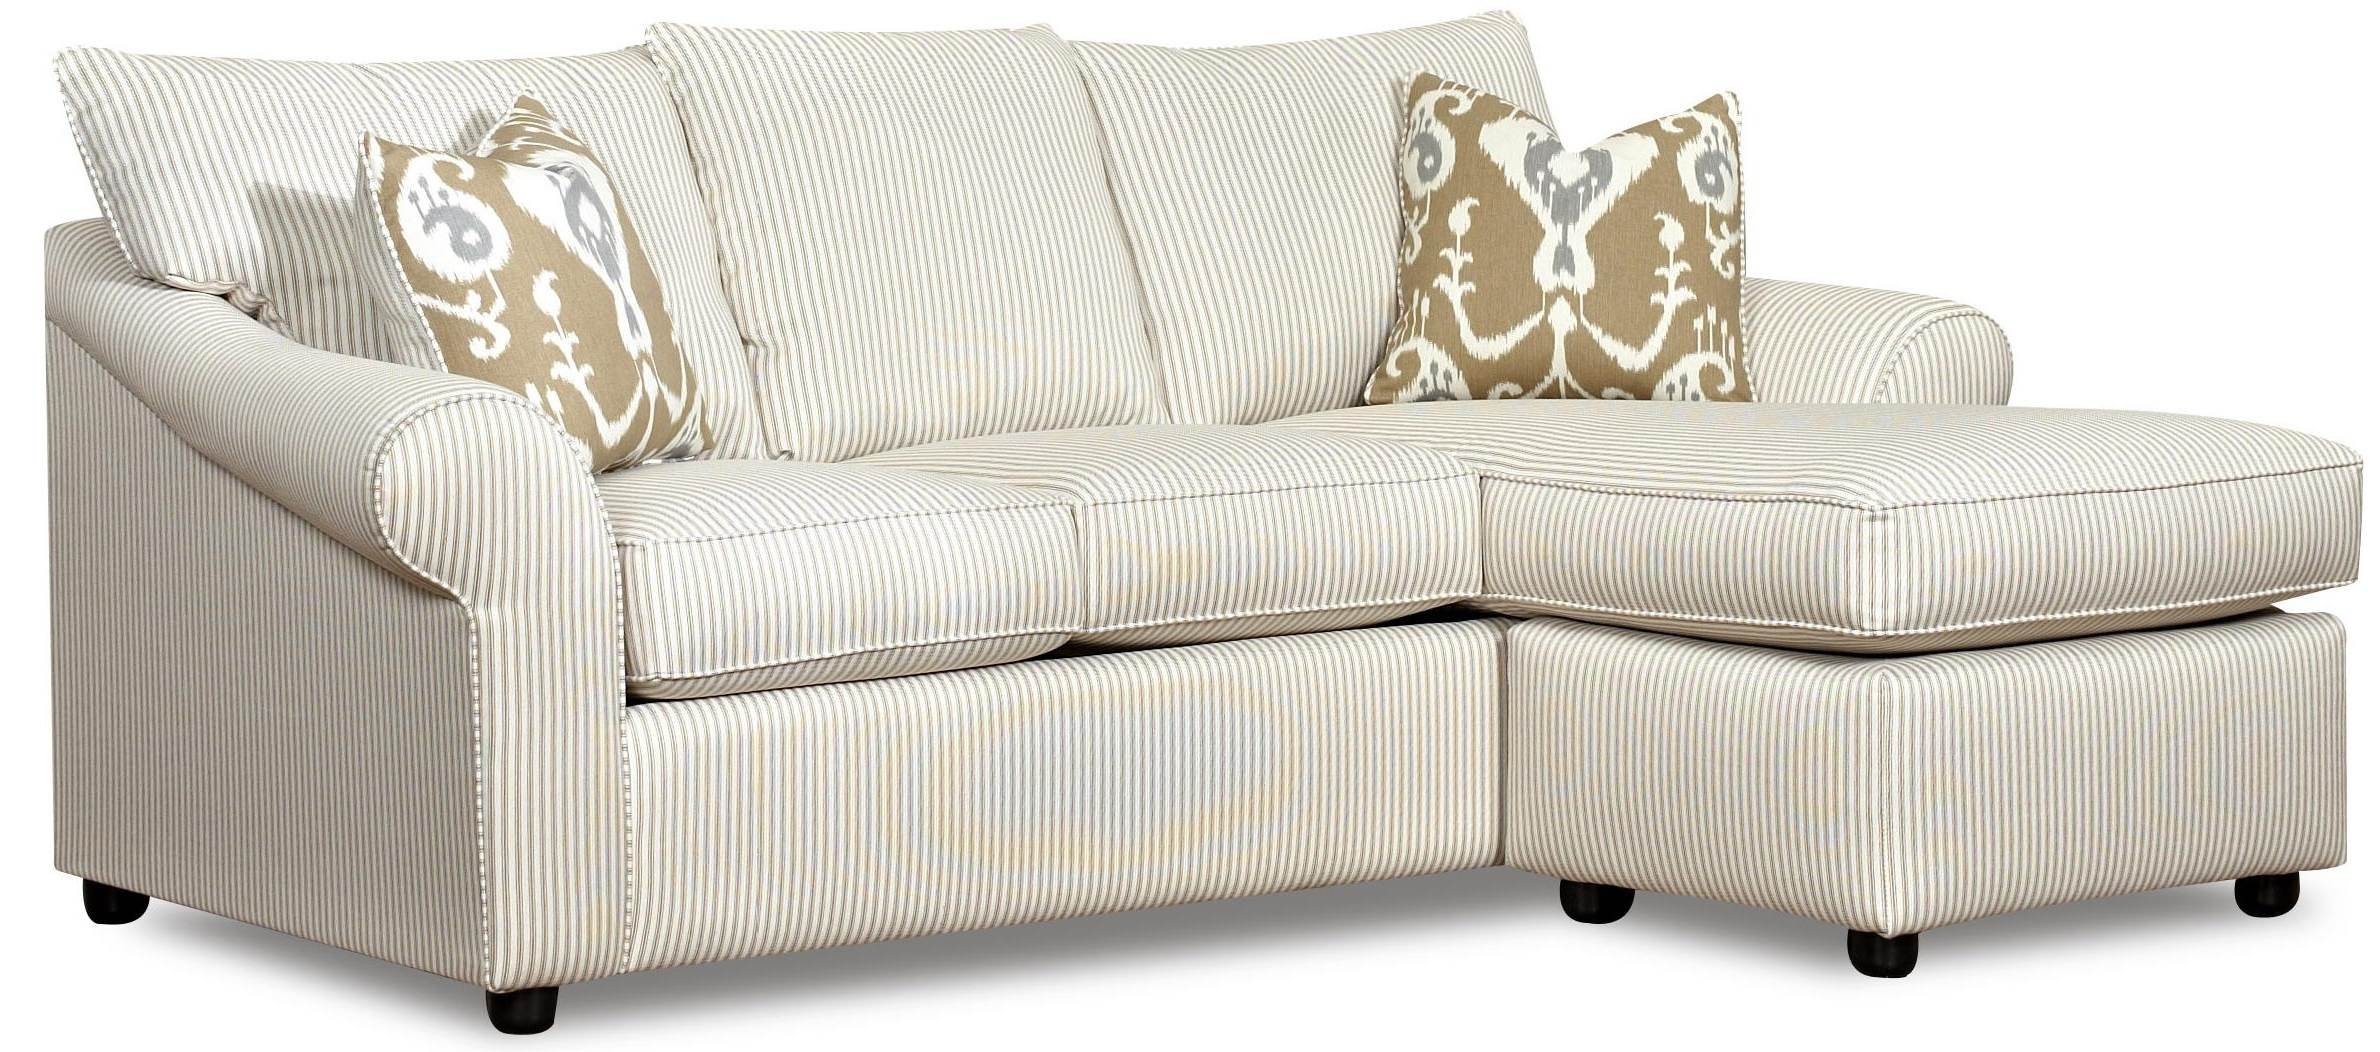 Most Recent Sofa With Reversible Chaise Loungeklaussner (View 12 of 15)